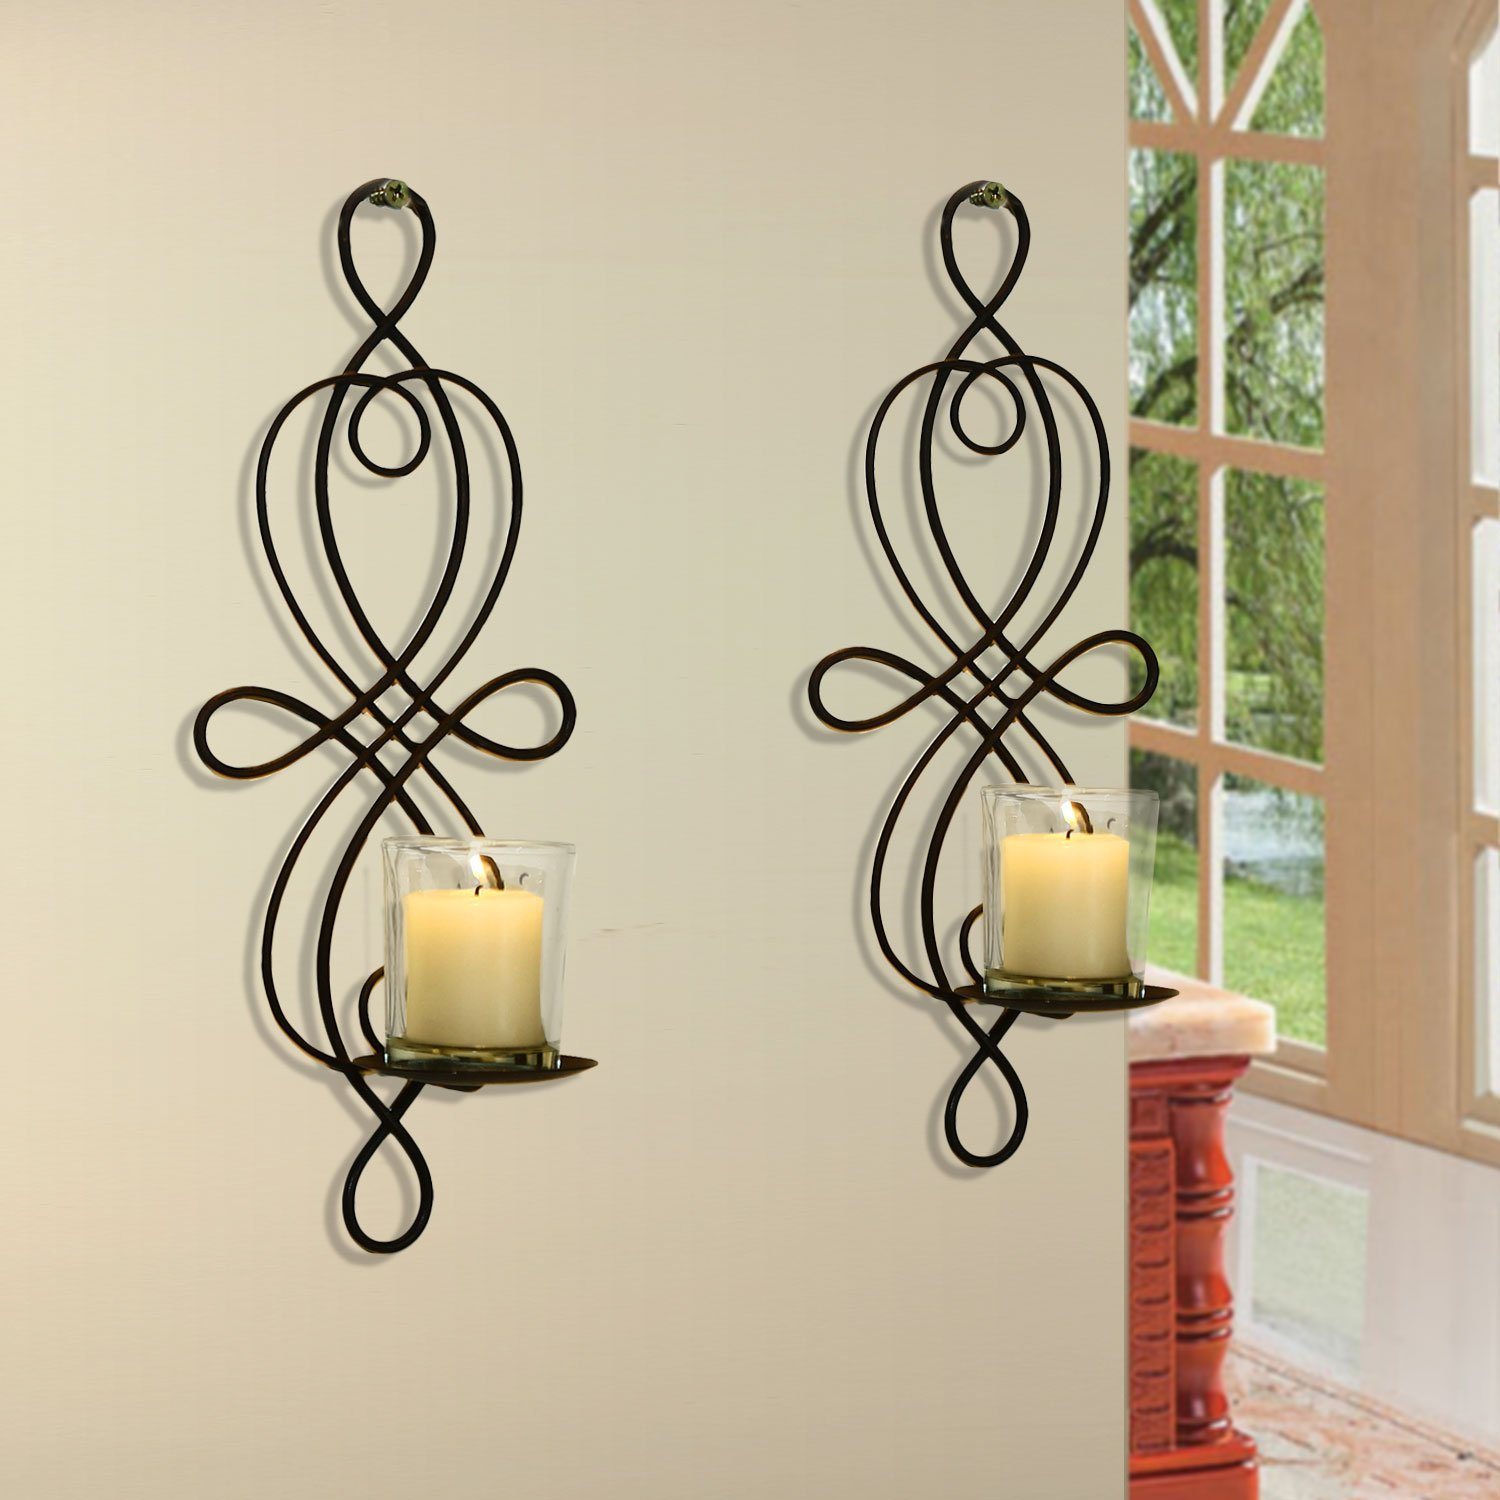 Adeco Iron and Glass Vertical Wall Hanging Scroll and Fleur De Lis Design 1 Pillar Candle Holder Sconce HD0003